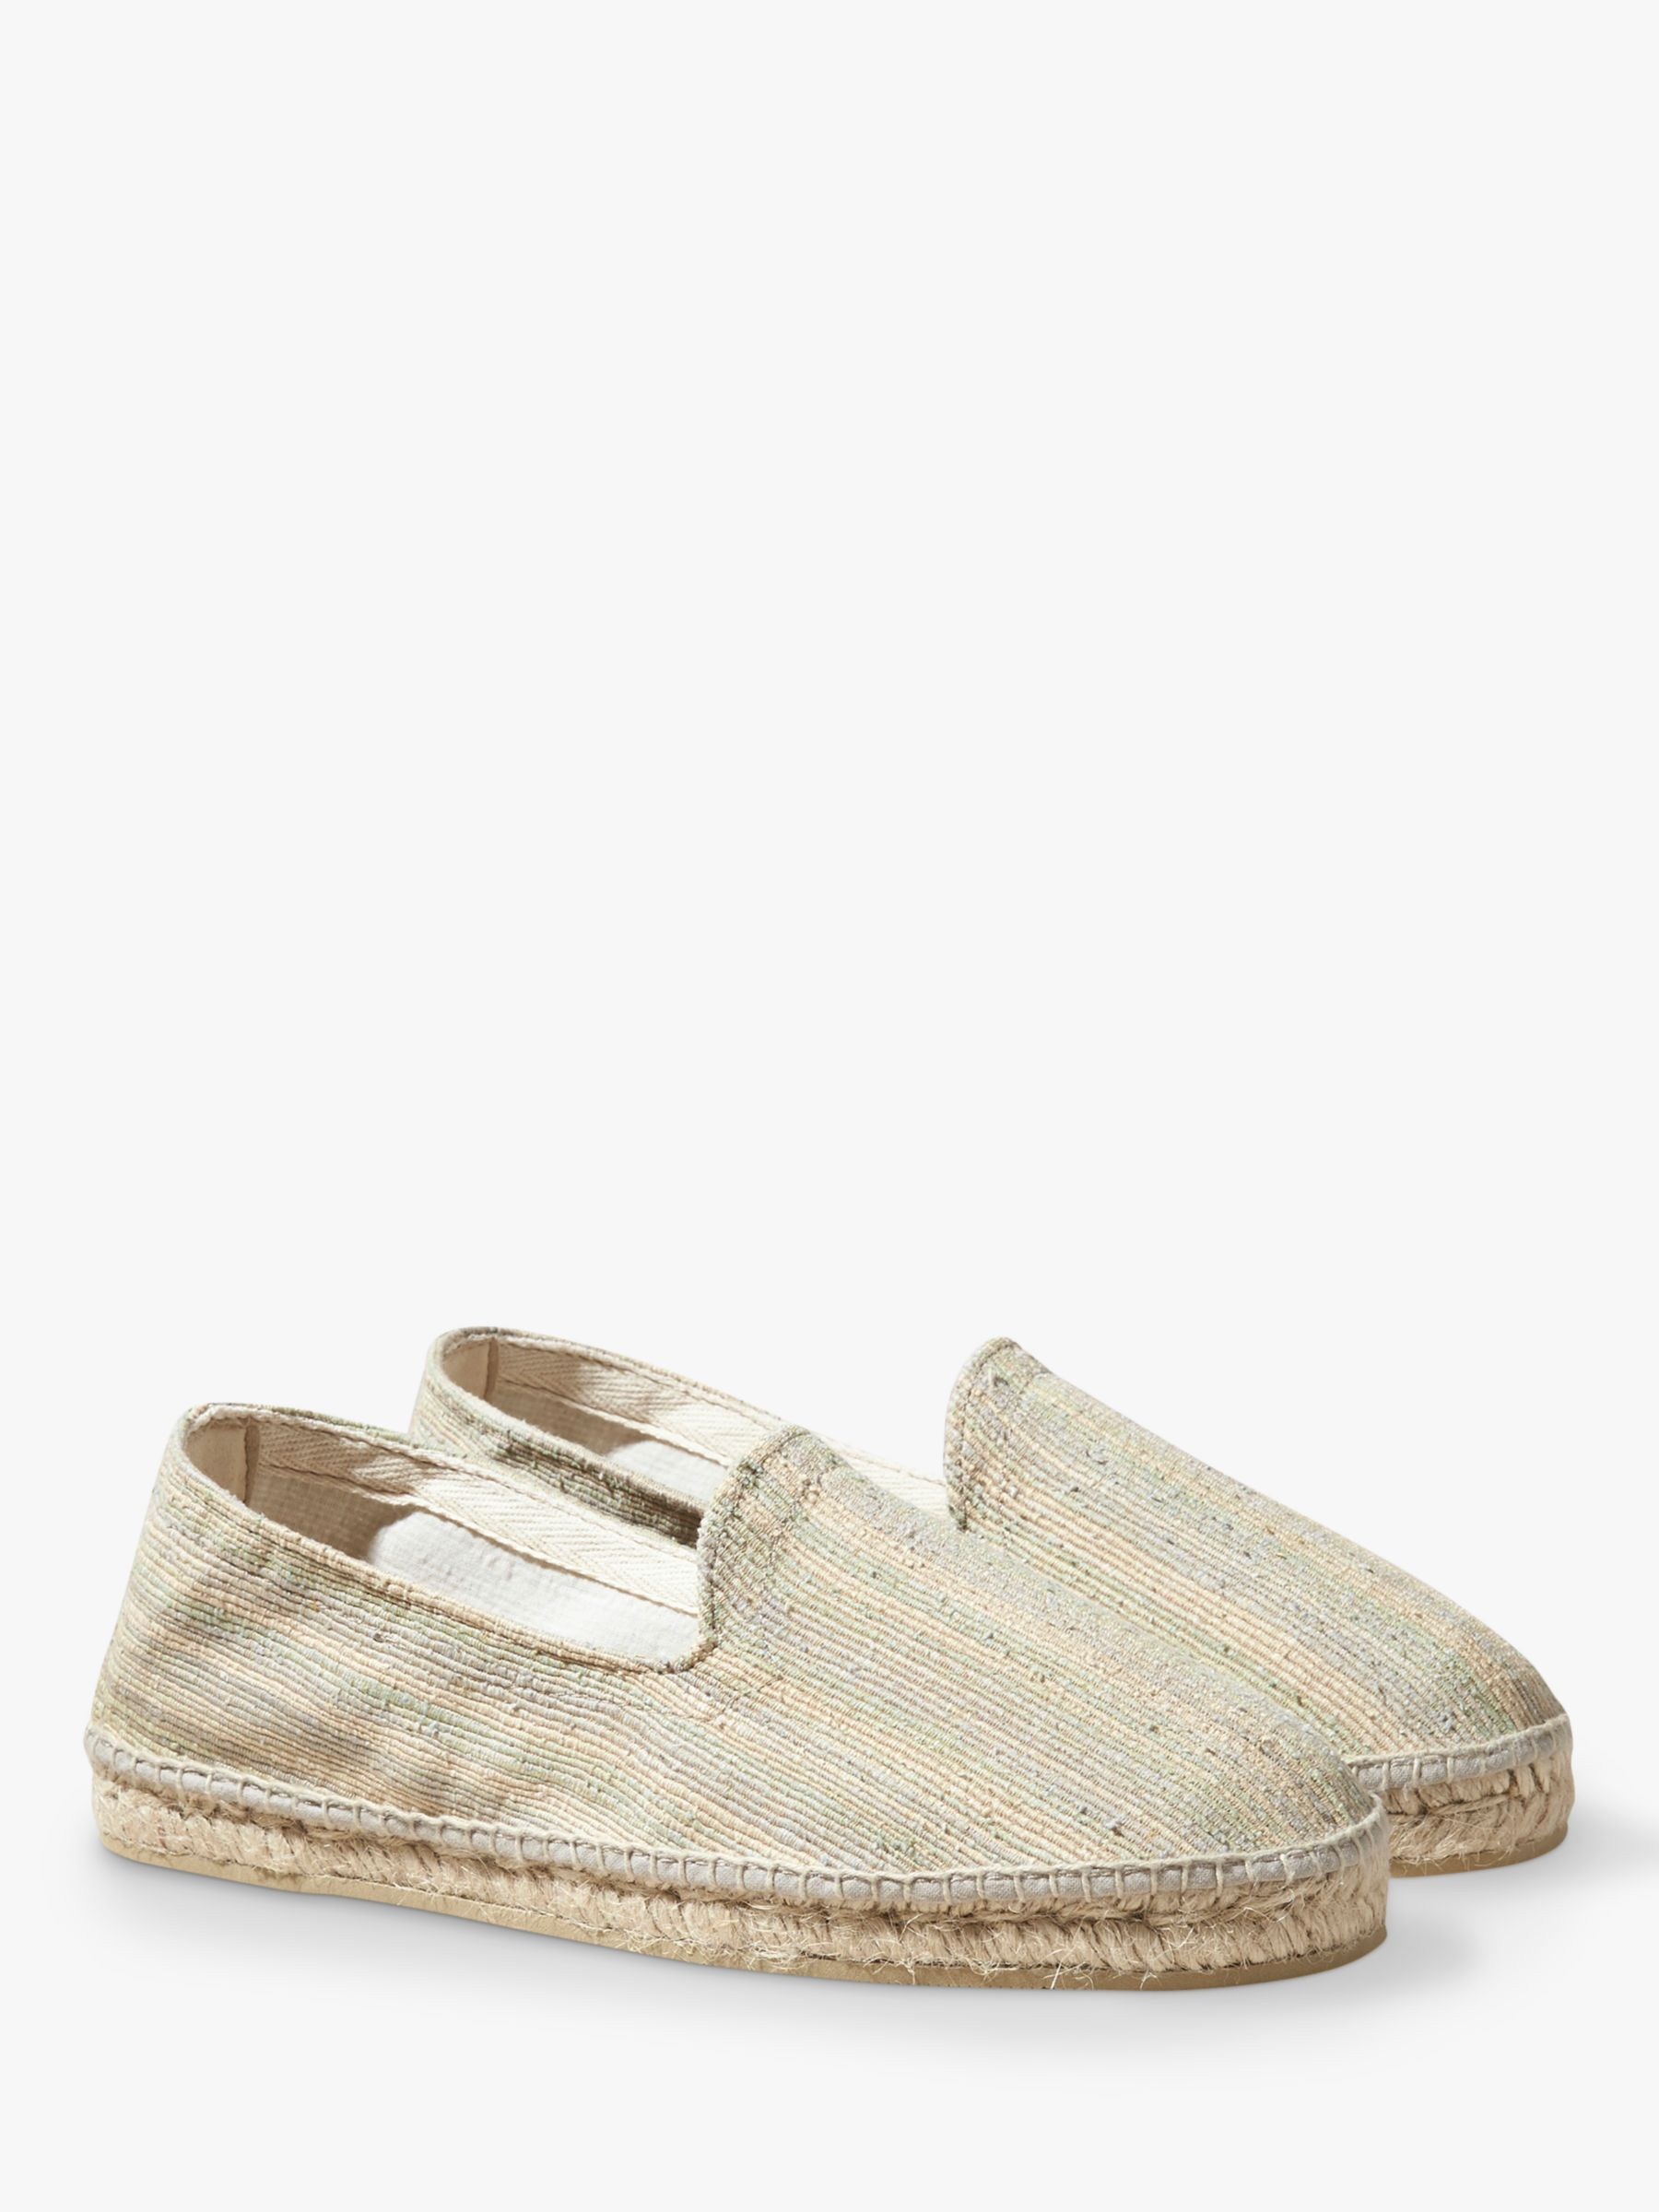 Oas OAS Textured Espadrilles, Natural